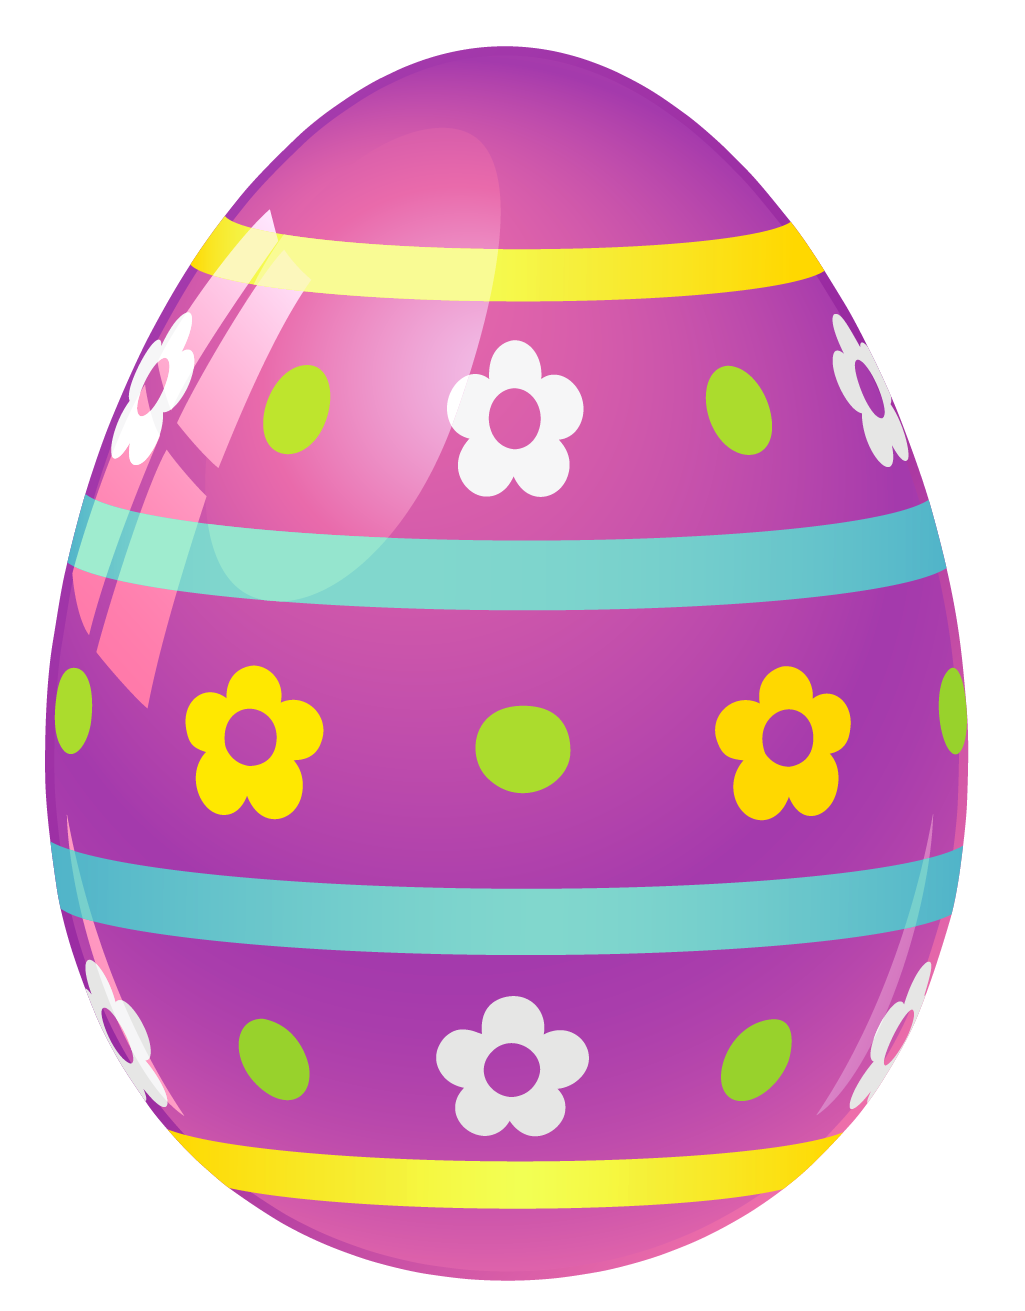 Egg easter clipart image royalty free library Easter egg clipart png - ClipartFest image royalty free library